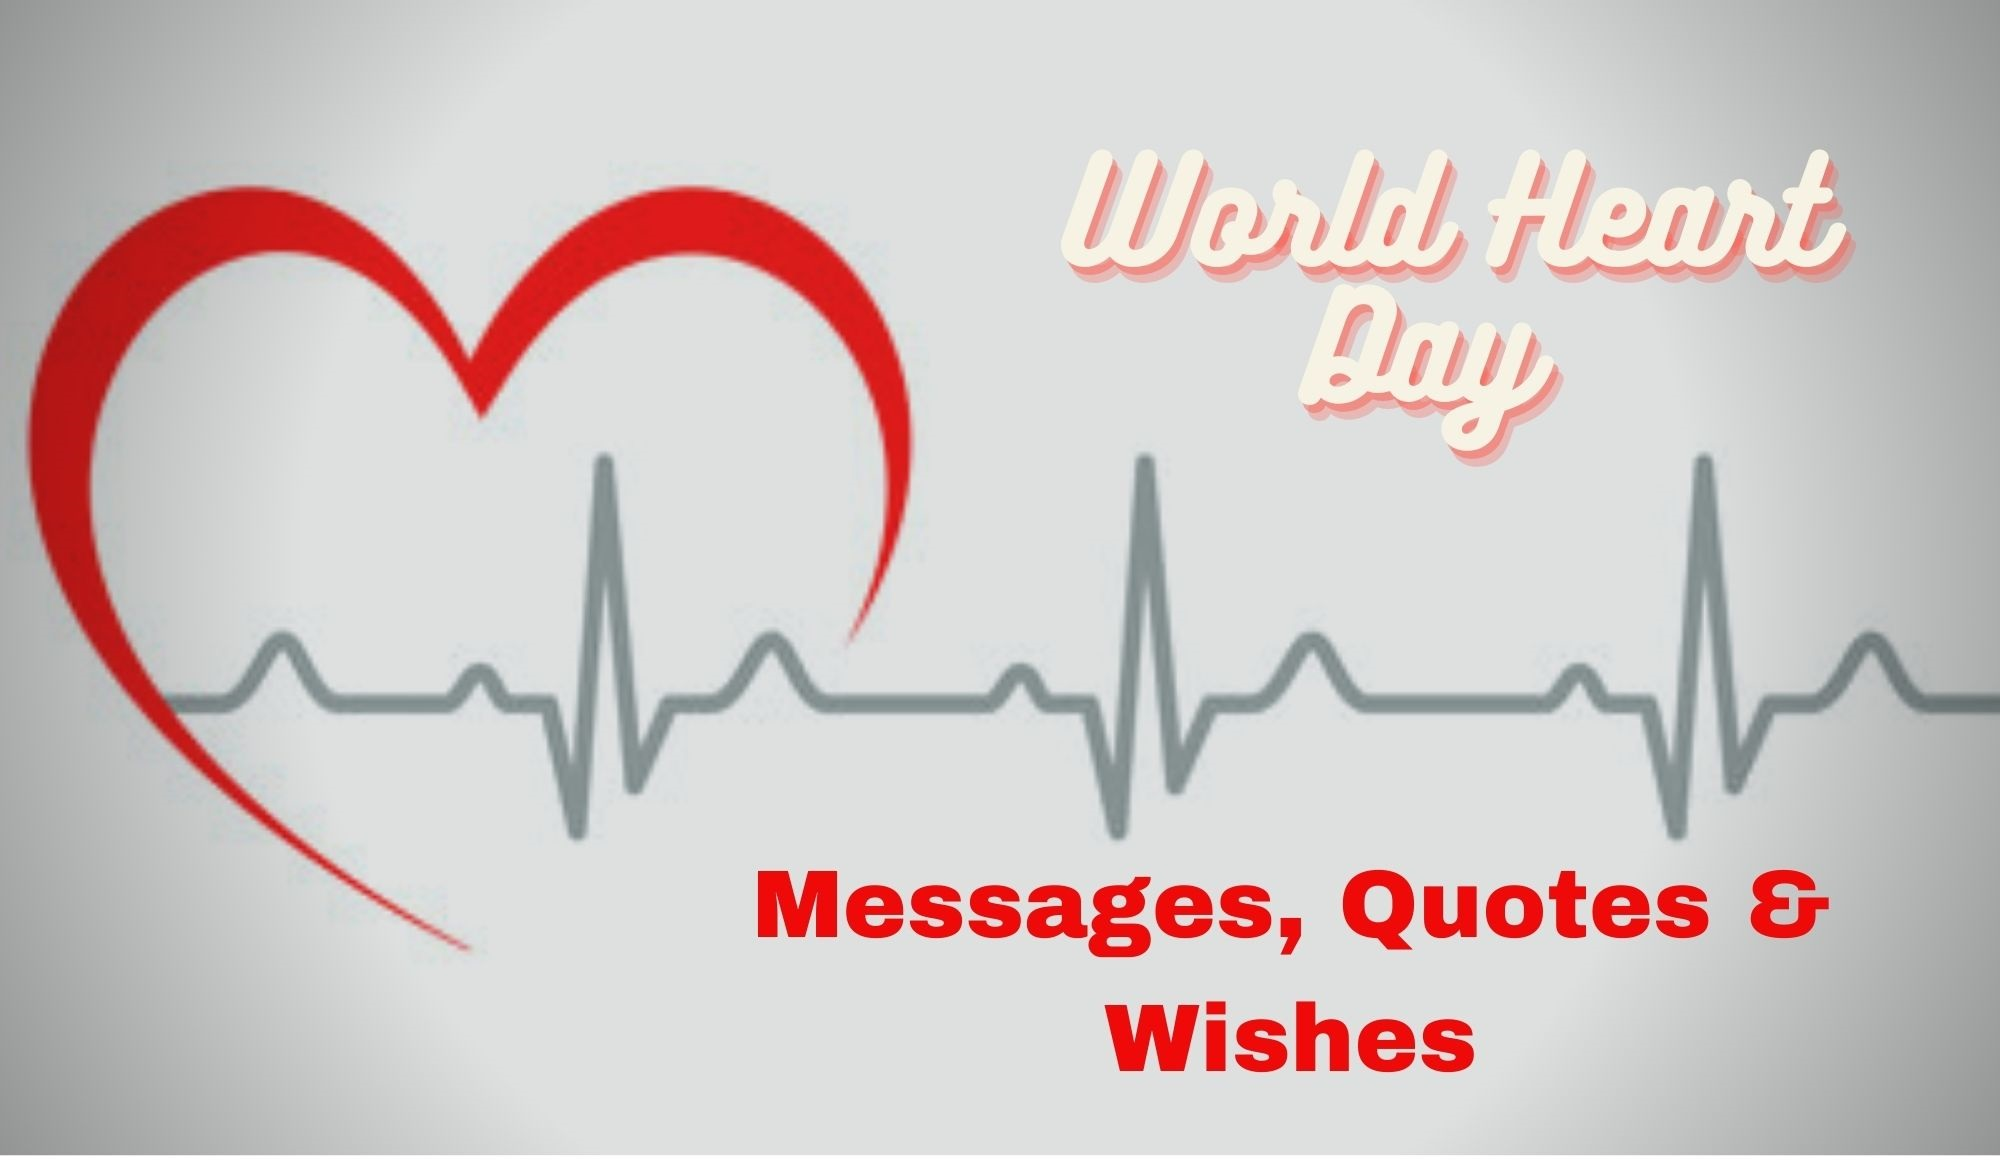 World Heart Day Messages, Quotes & Wishes